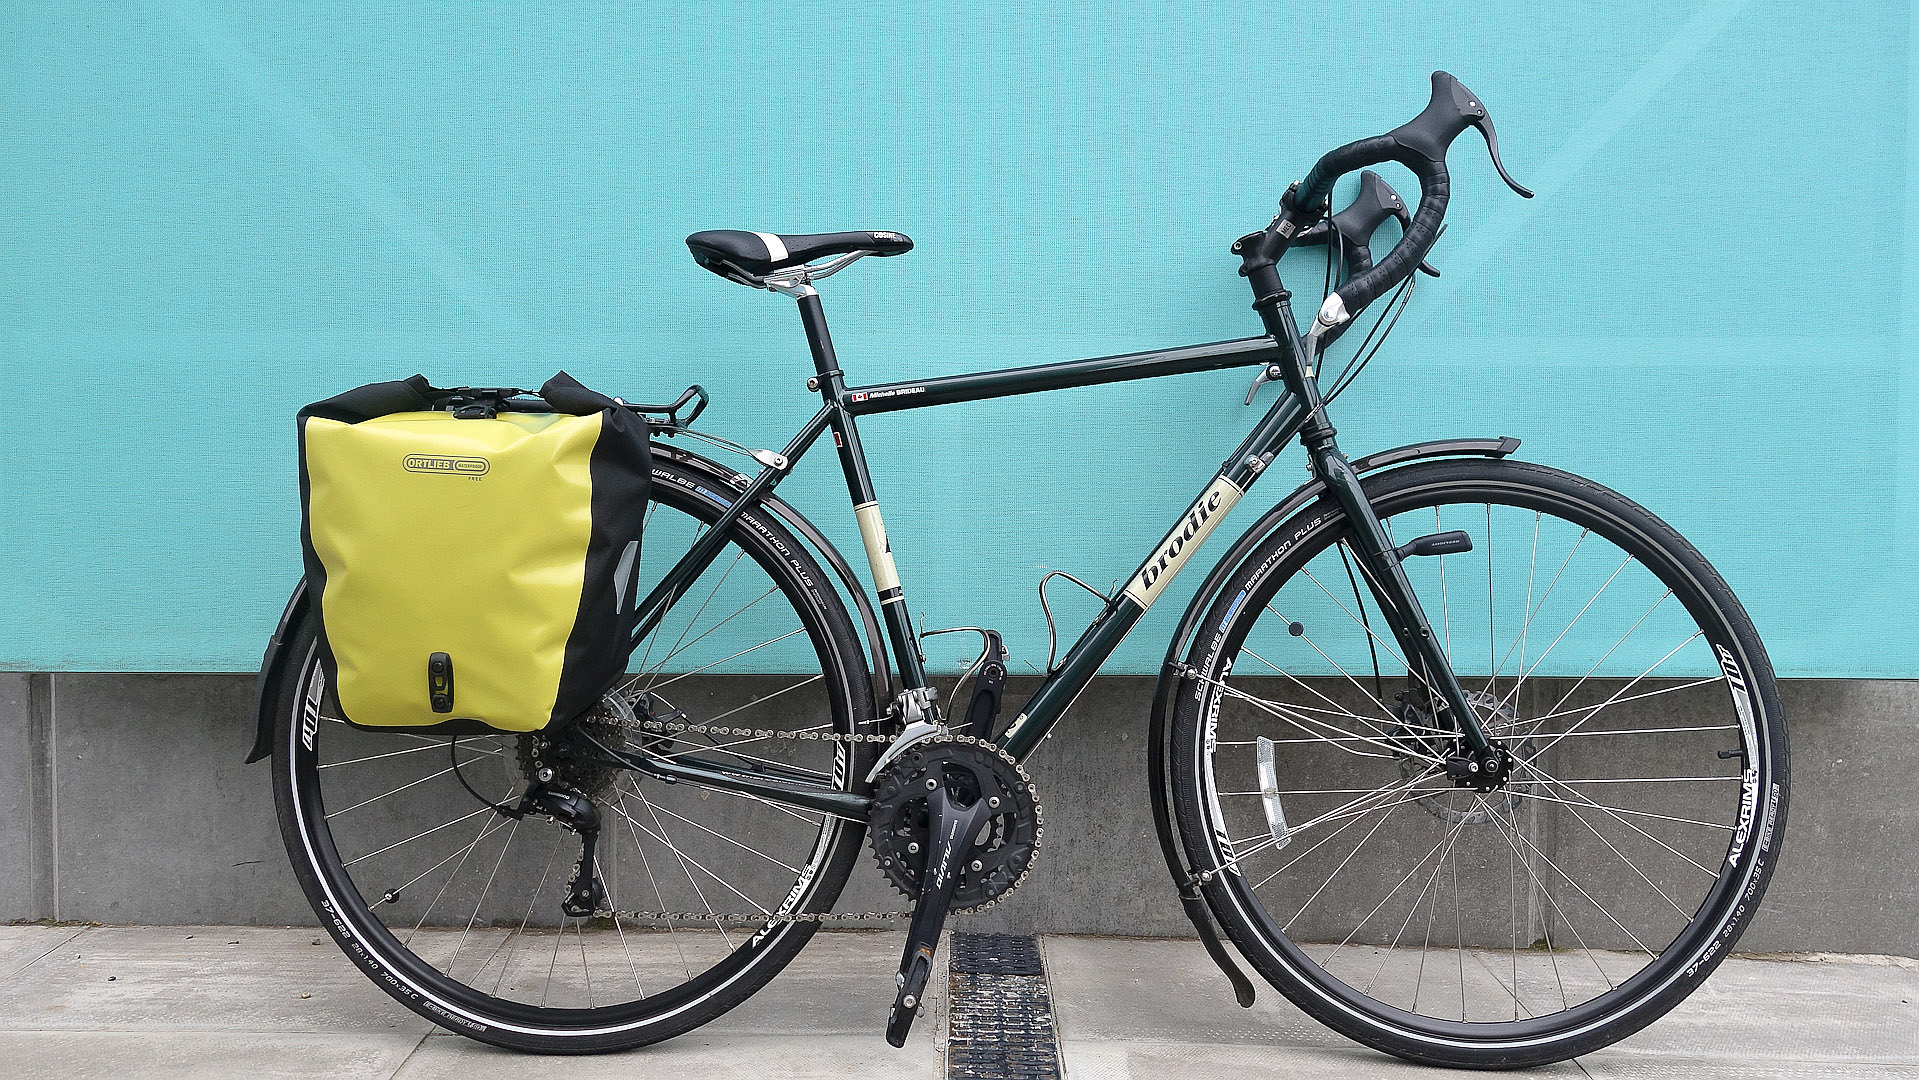 Ortlieb back-roller free pannier